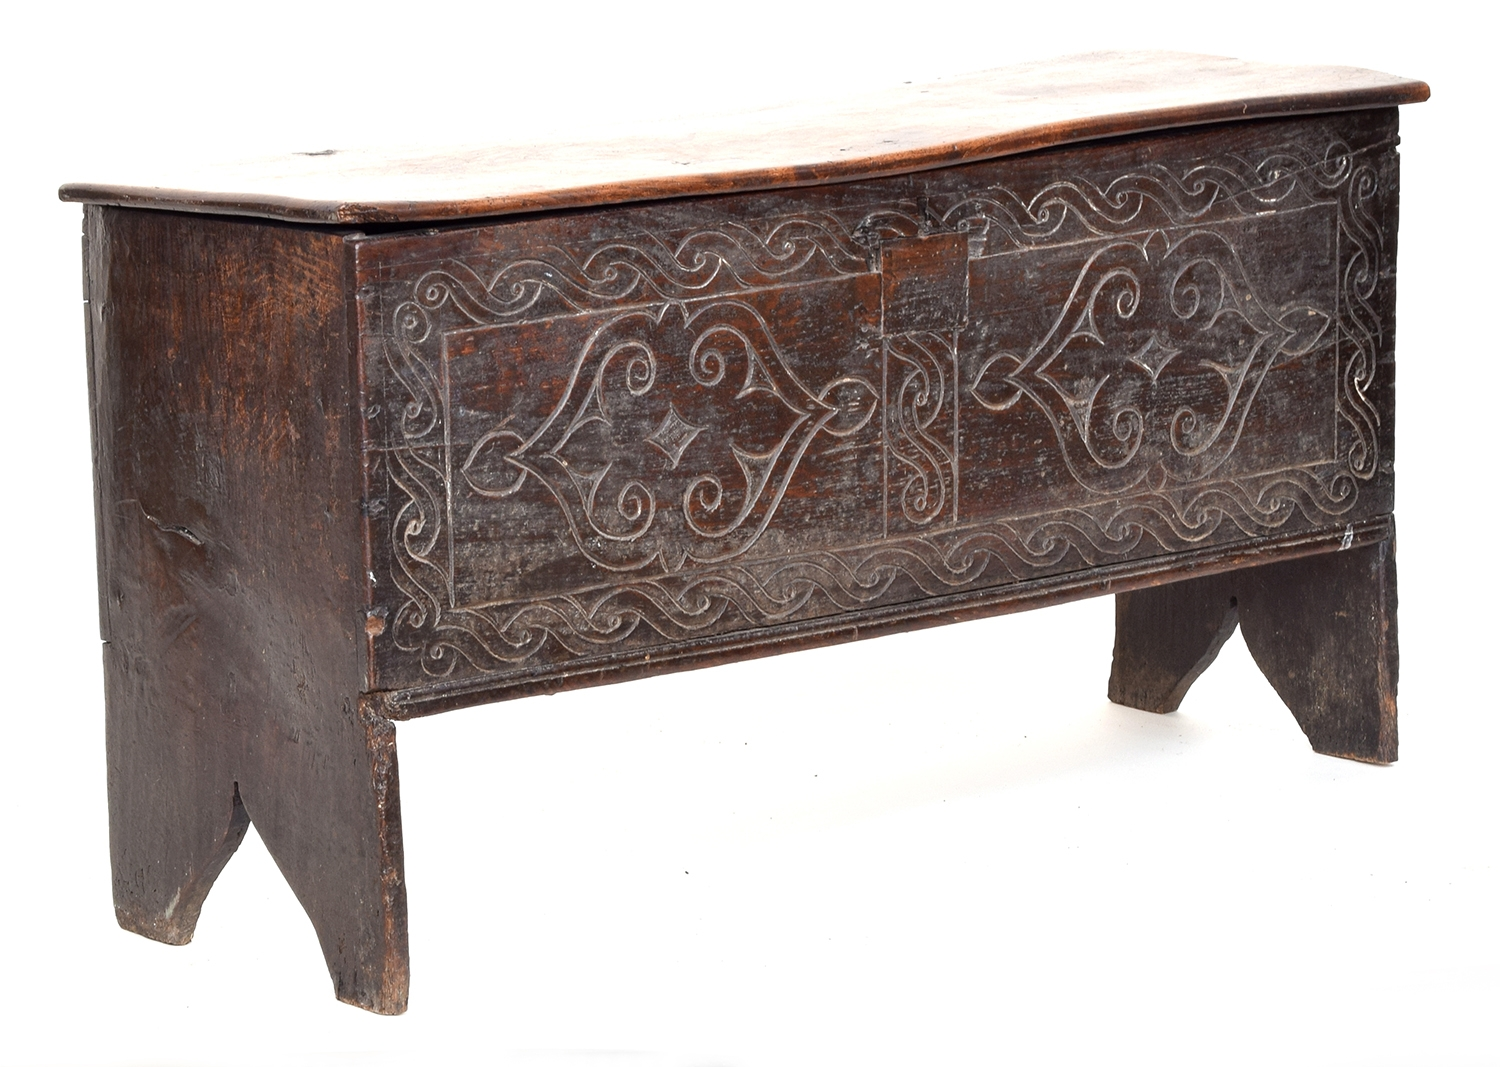 A 17th century vernacular six plank elm and oak coffer, with cut-in feet to the end boards, 103cm - Image 2 of 2